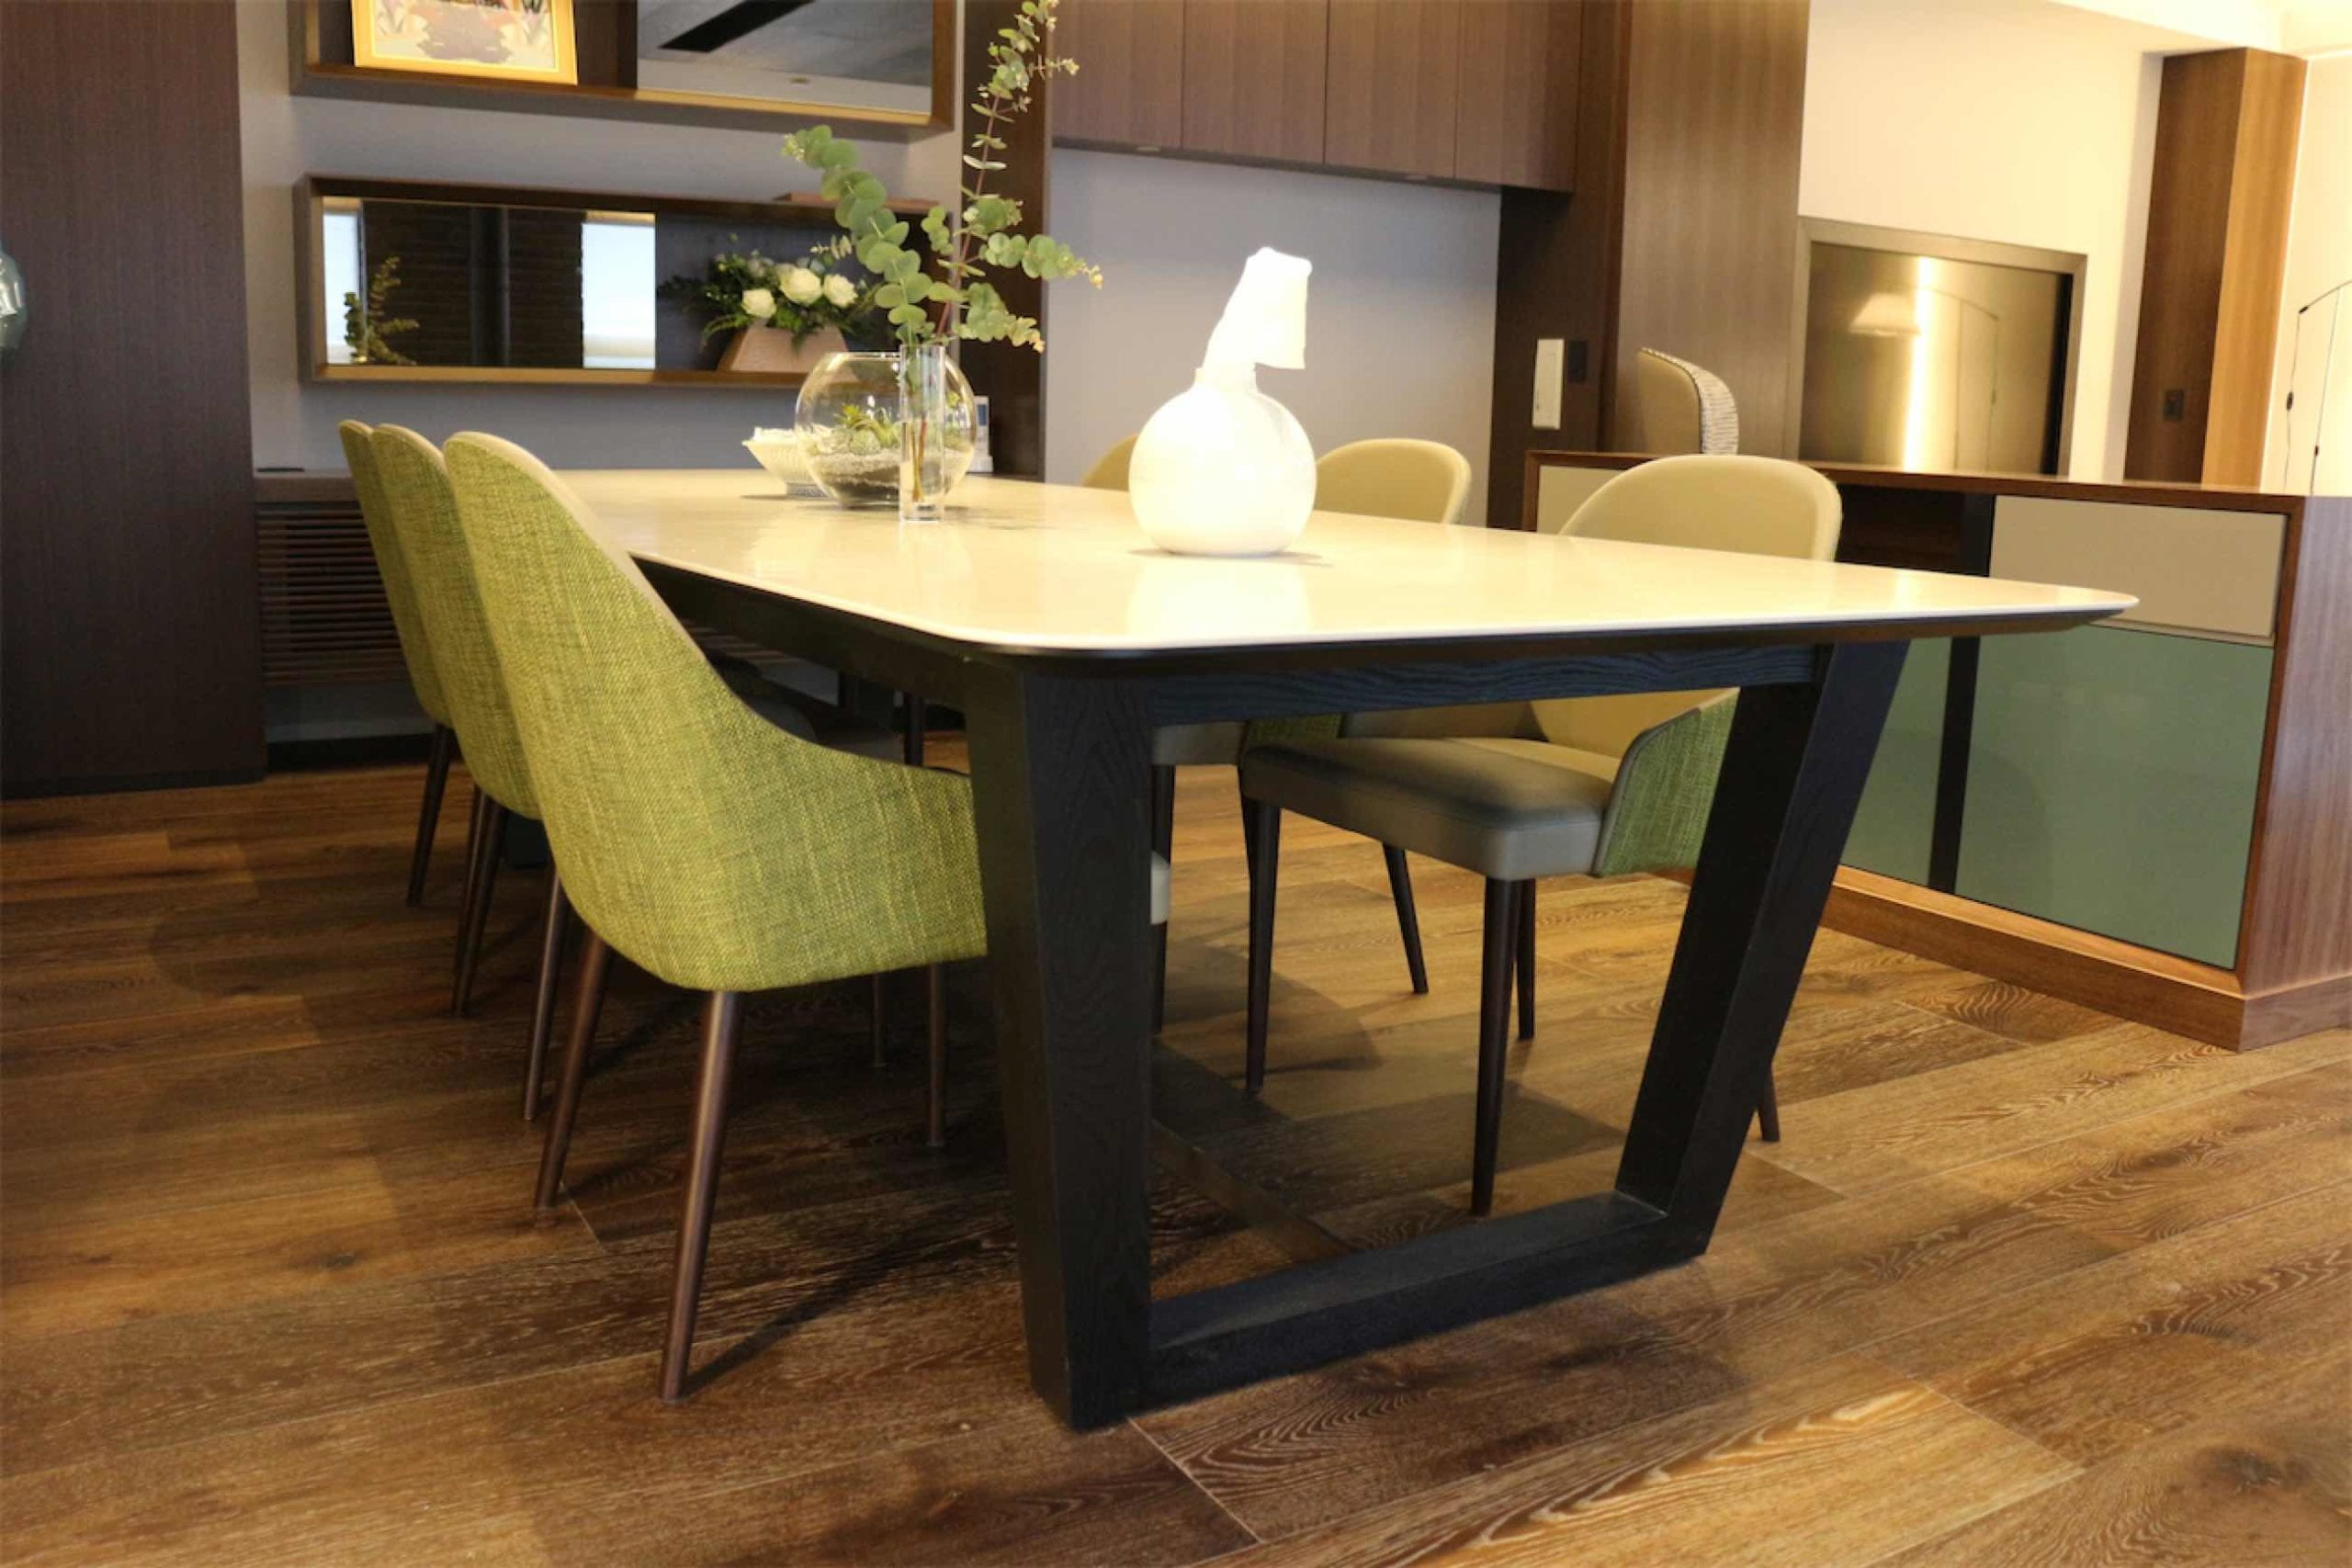 Smoked Oak Rustic-Client Project Japan-02